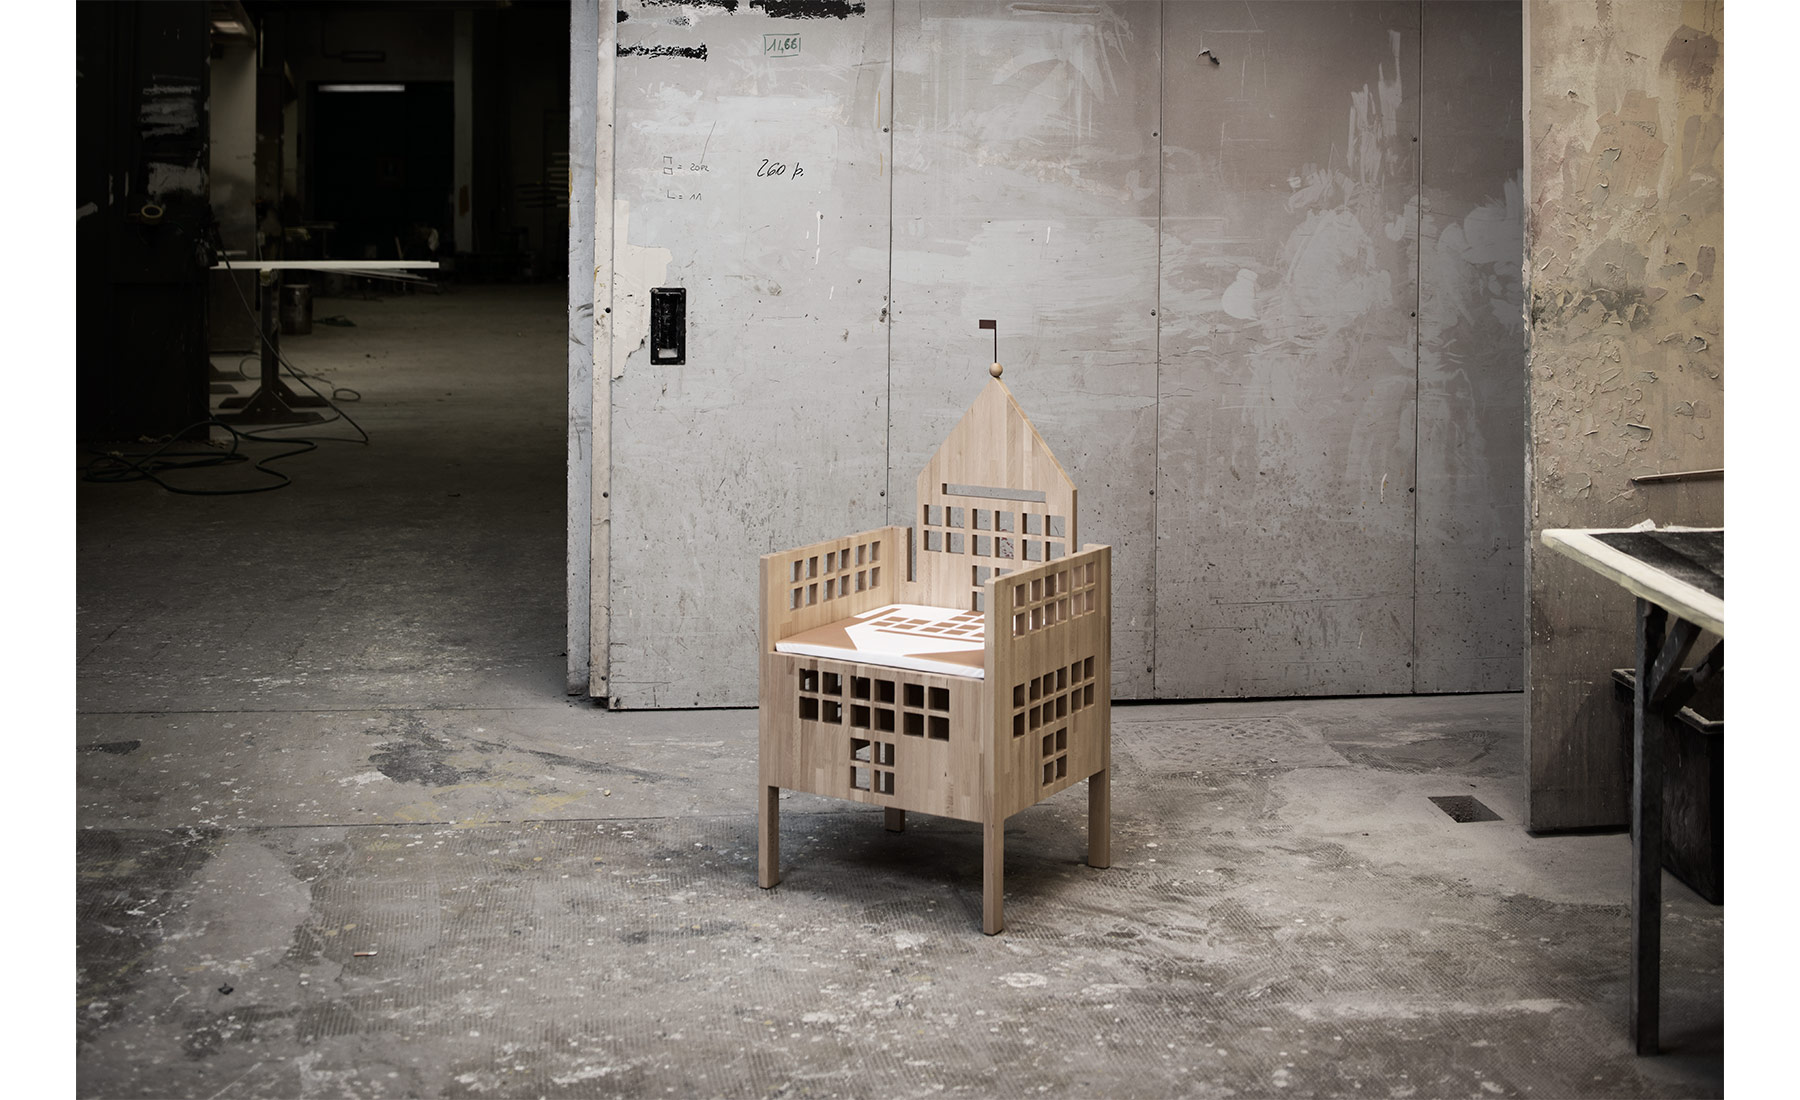 marco-tacchini-photographer-village-chairs_01